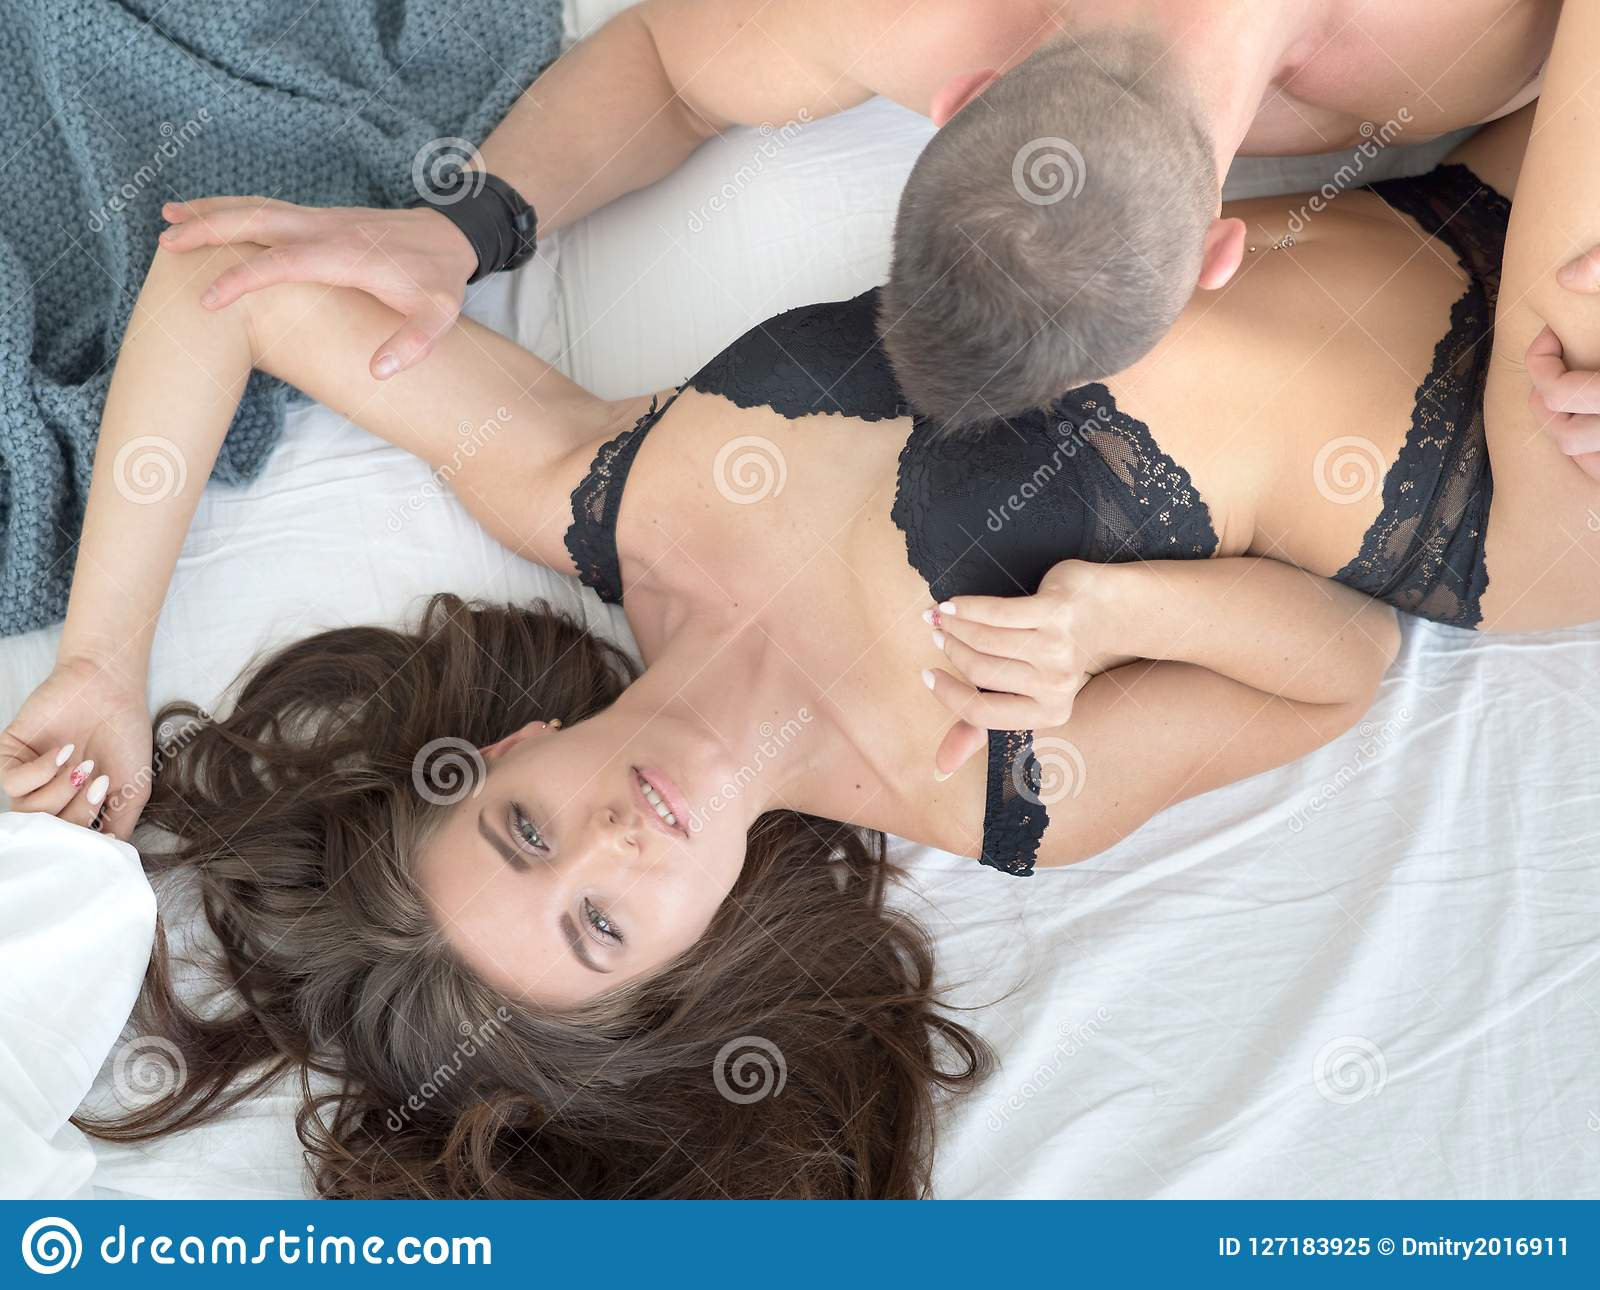 Young Passionate Couple Making Love In Bed. Stock Image